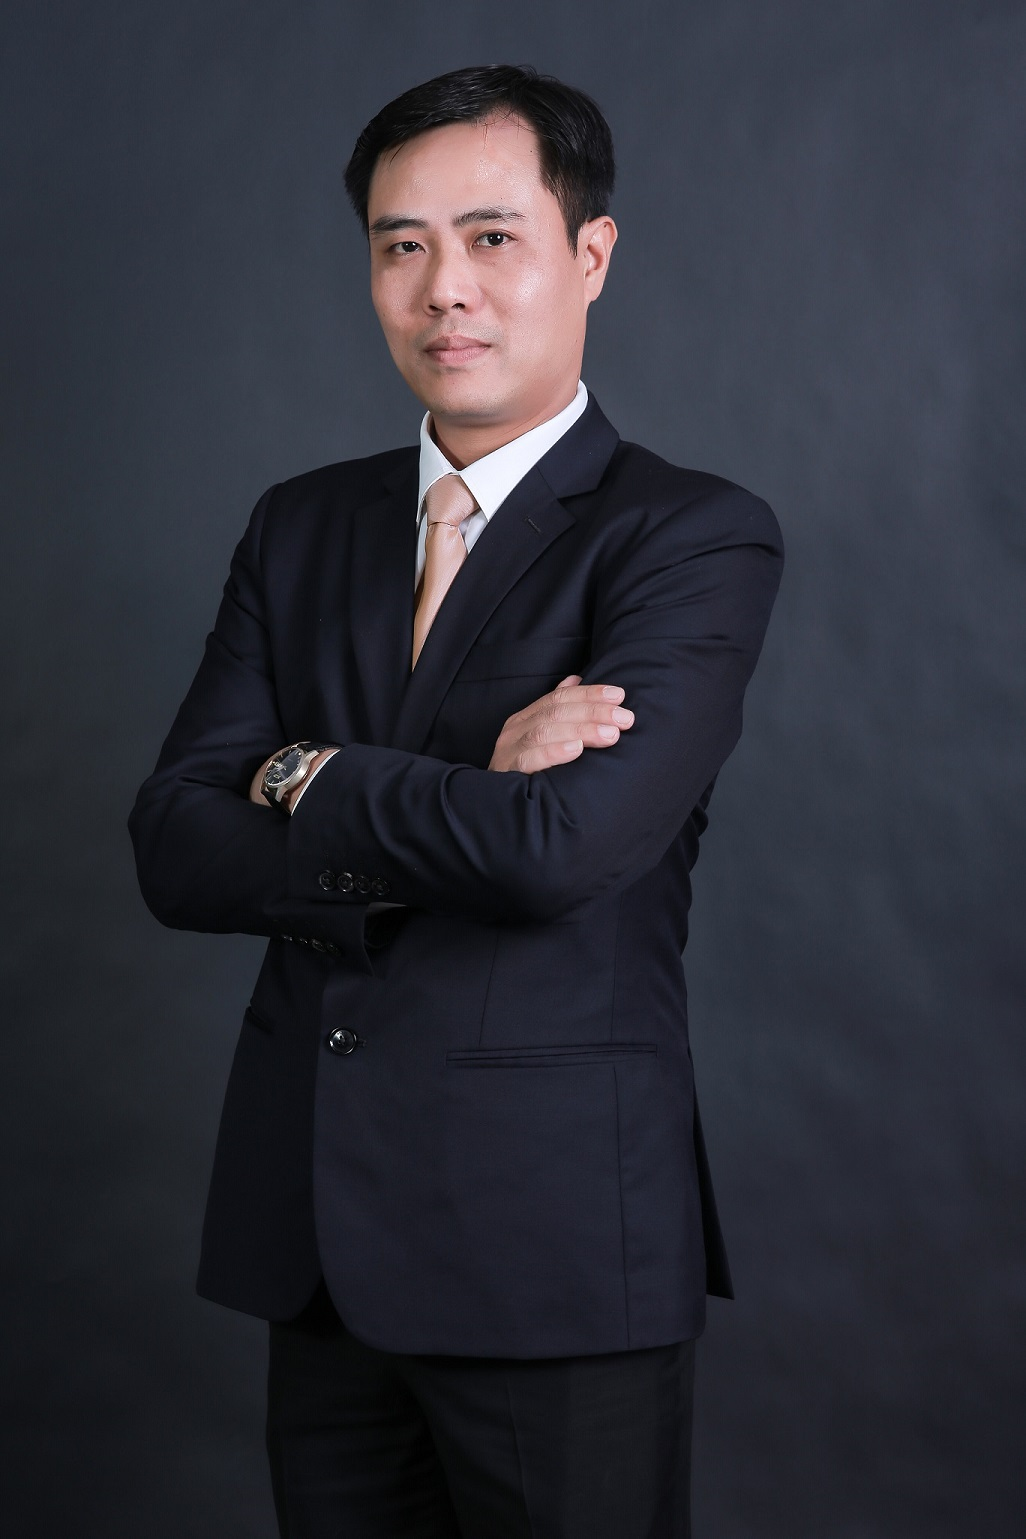 Mr. KHUẤT TRUNG THẮNG